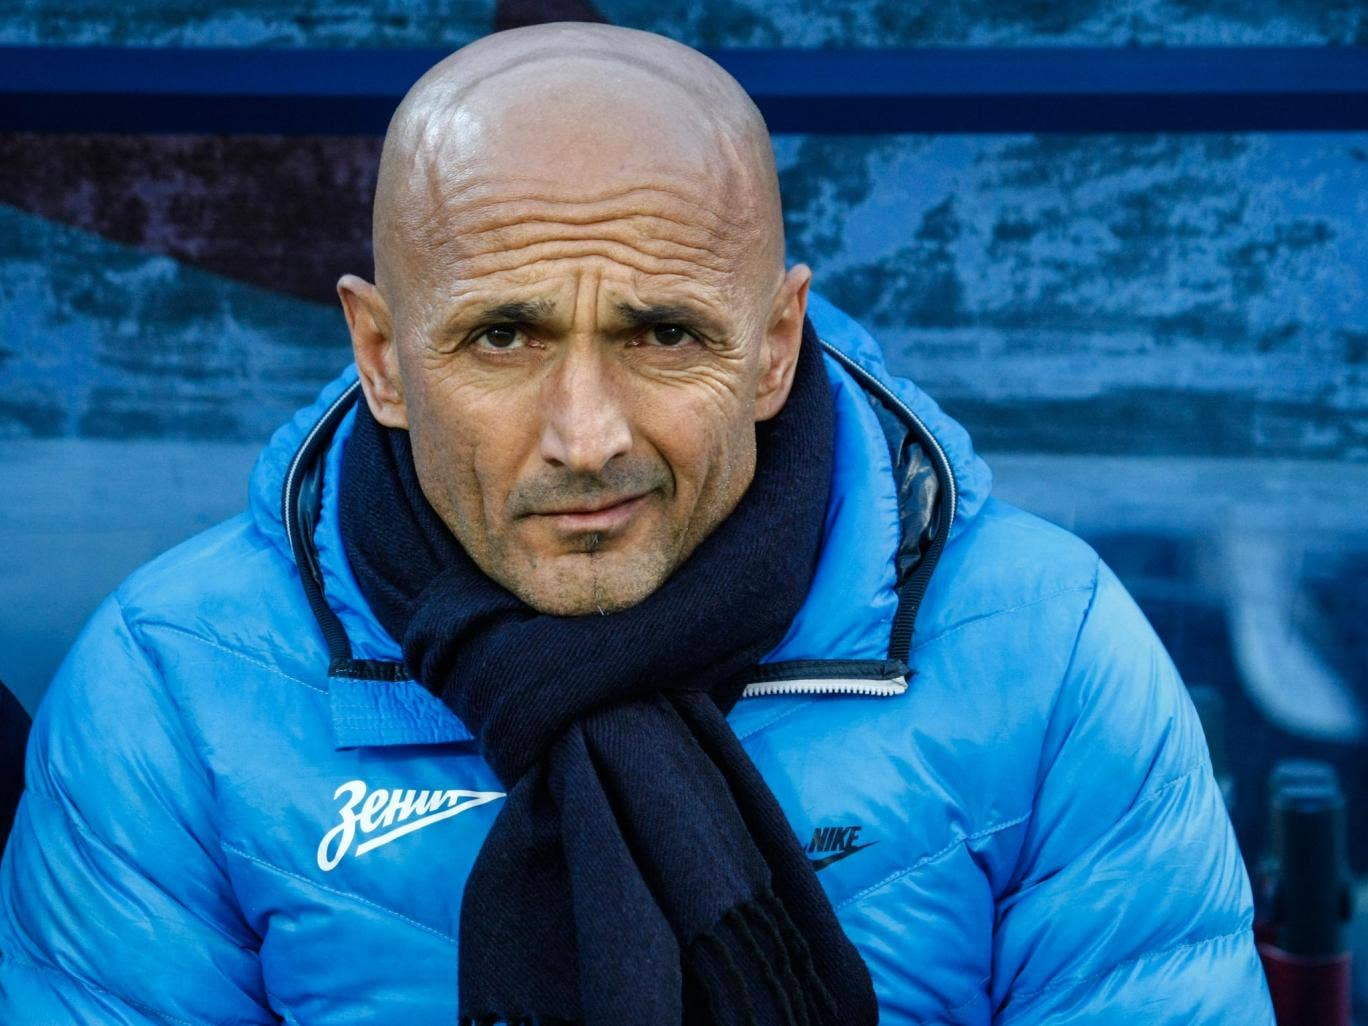 Zenit St Petersburg have sacked manager Luciano Spalletti